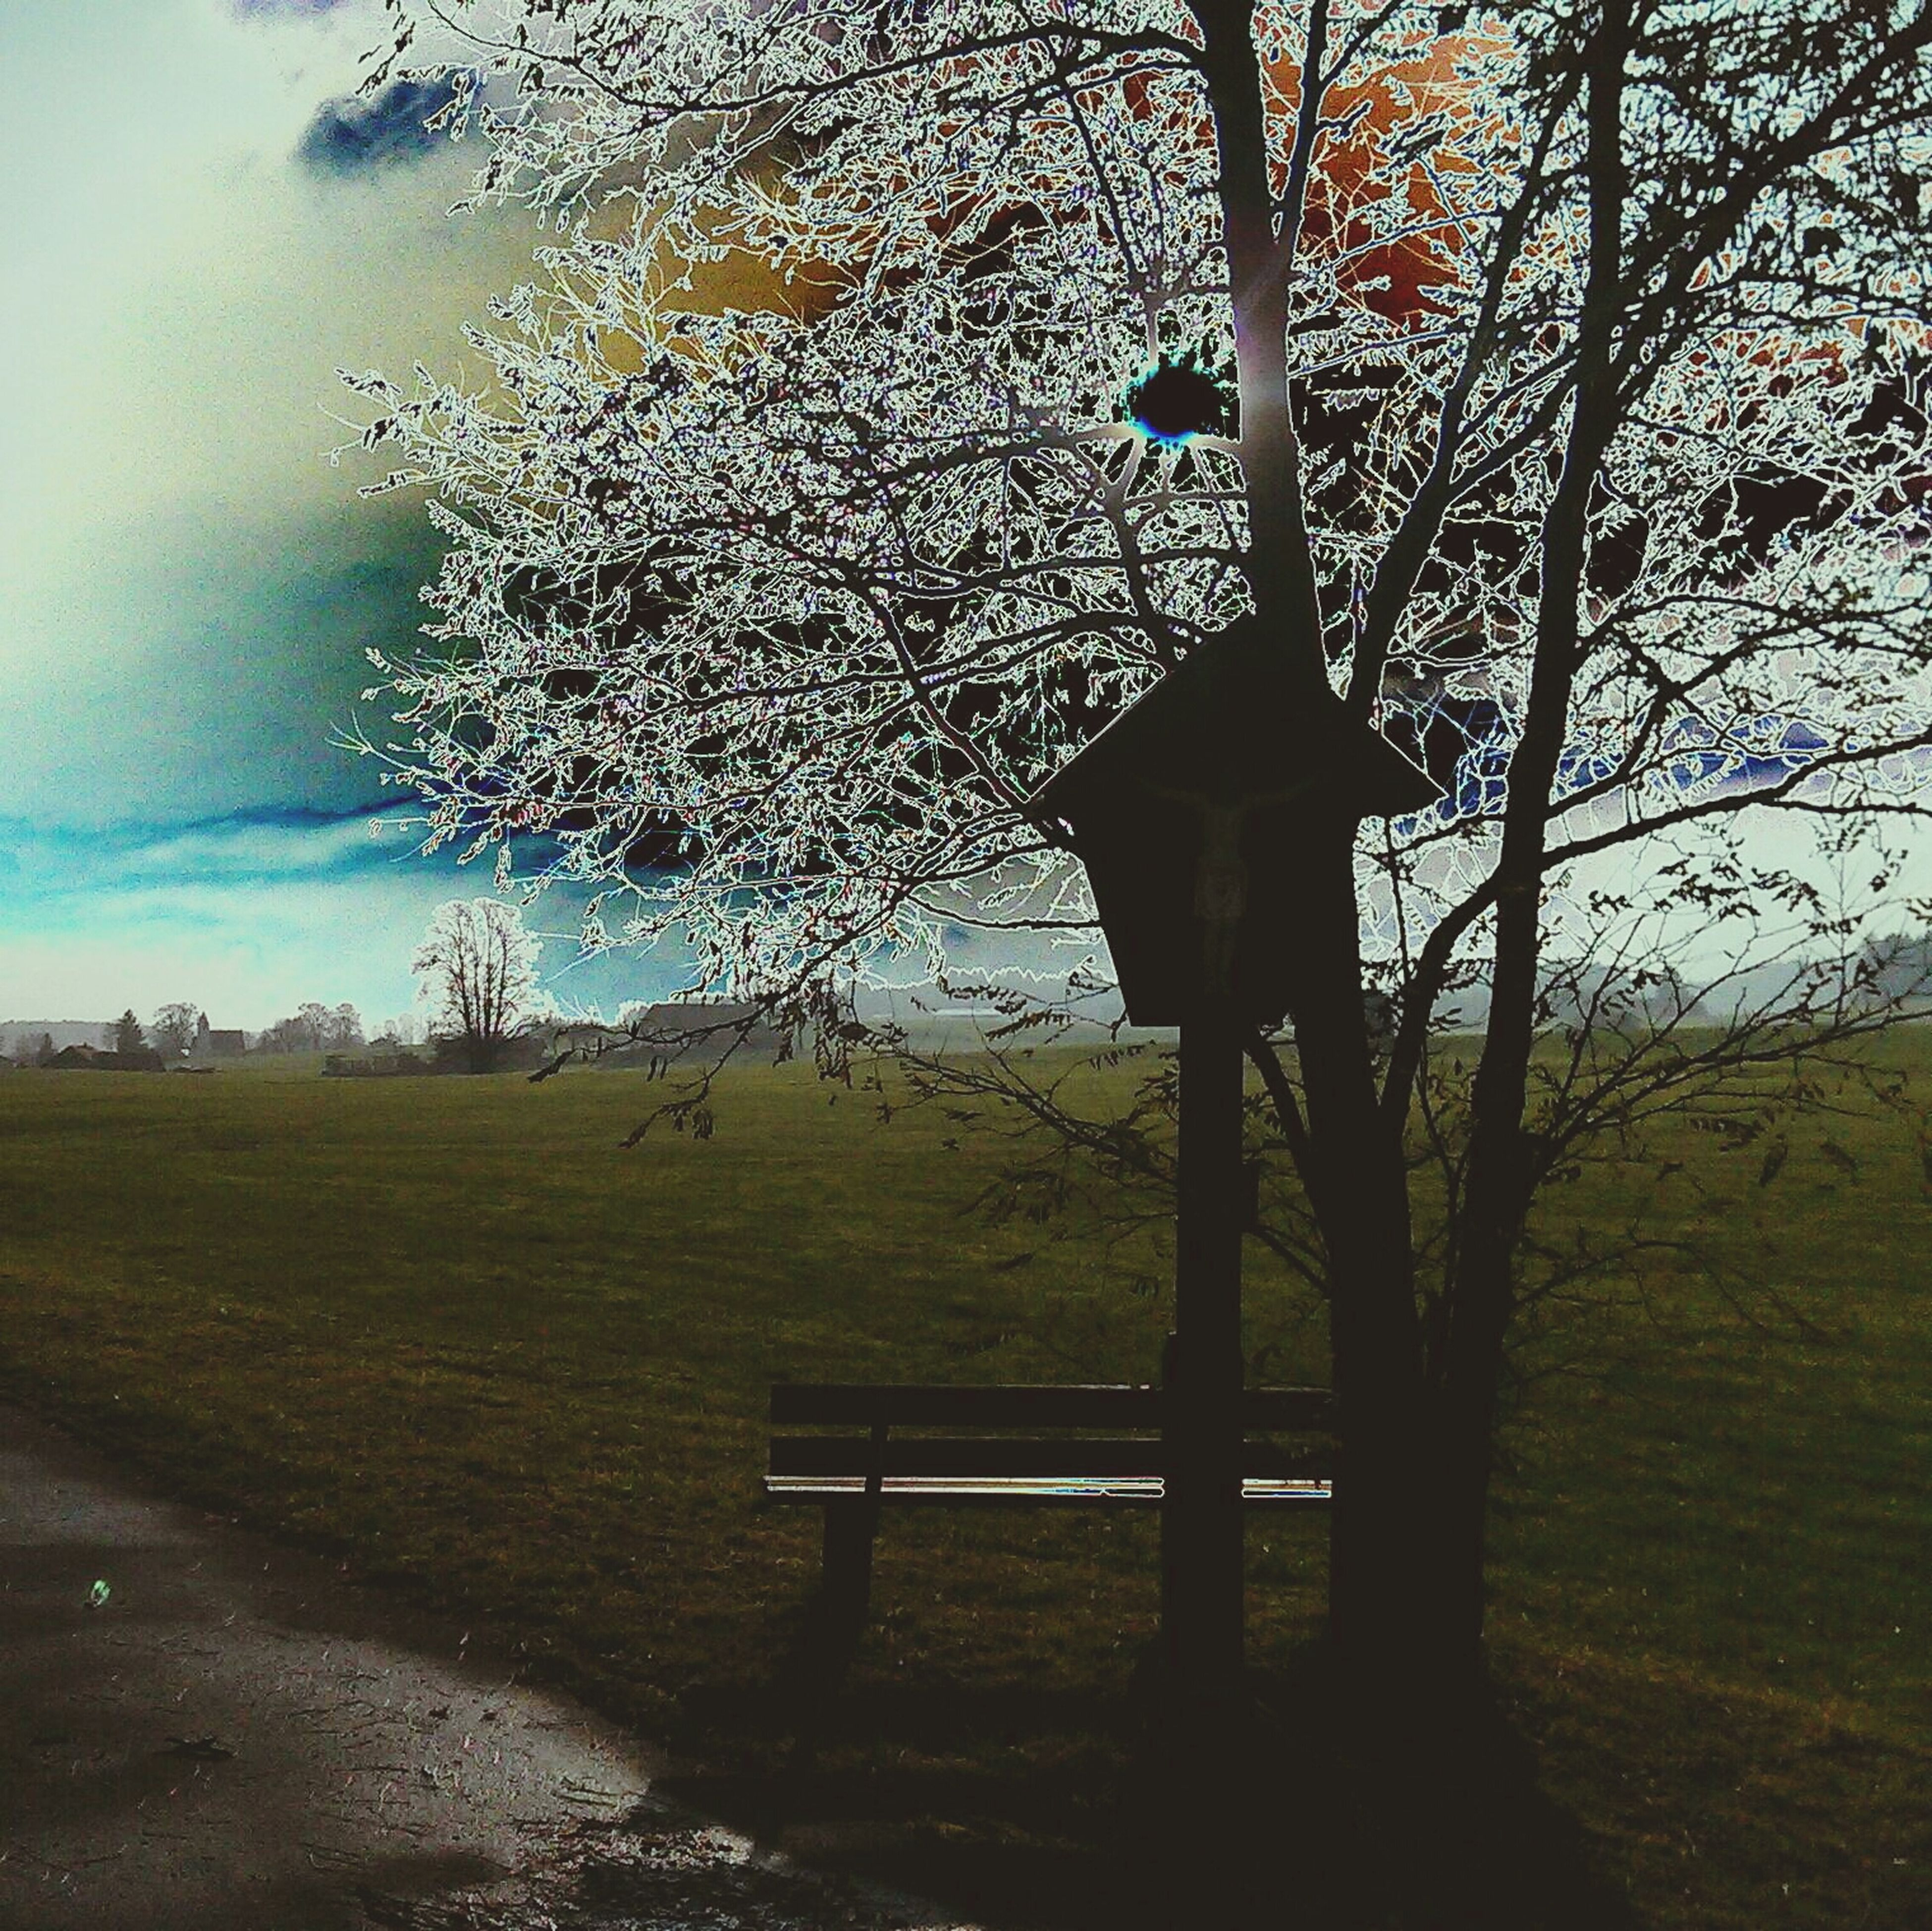 grass, tranquility, tree, tranquil scene, field, landscape, sky, scenics, nature, beauty in nature, bench, grassy, empty, absence, sunlight, tree trunk, non-urban scene, growth, branch, day